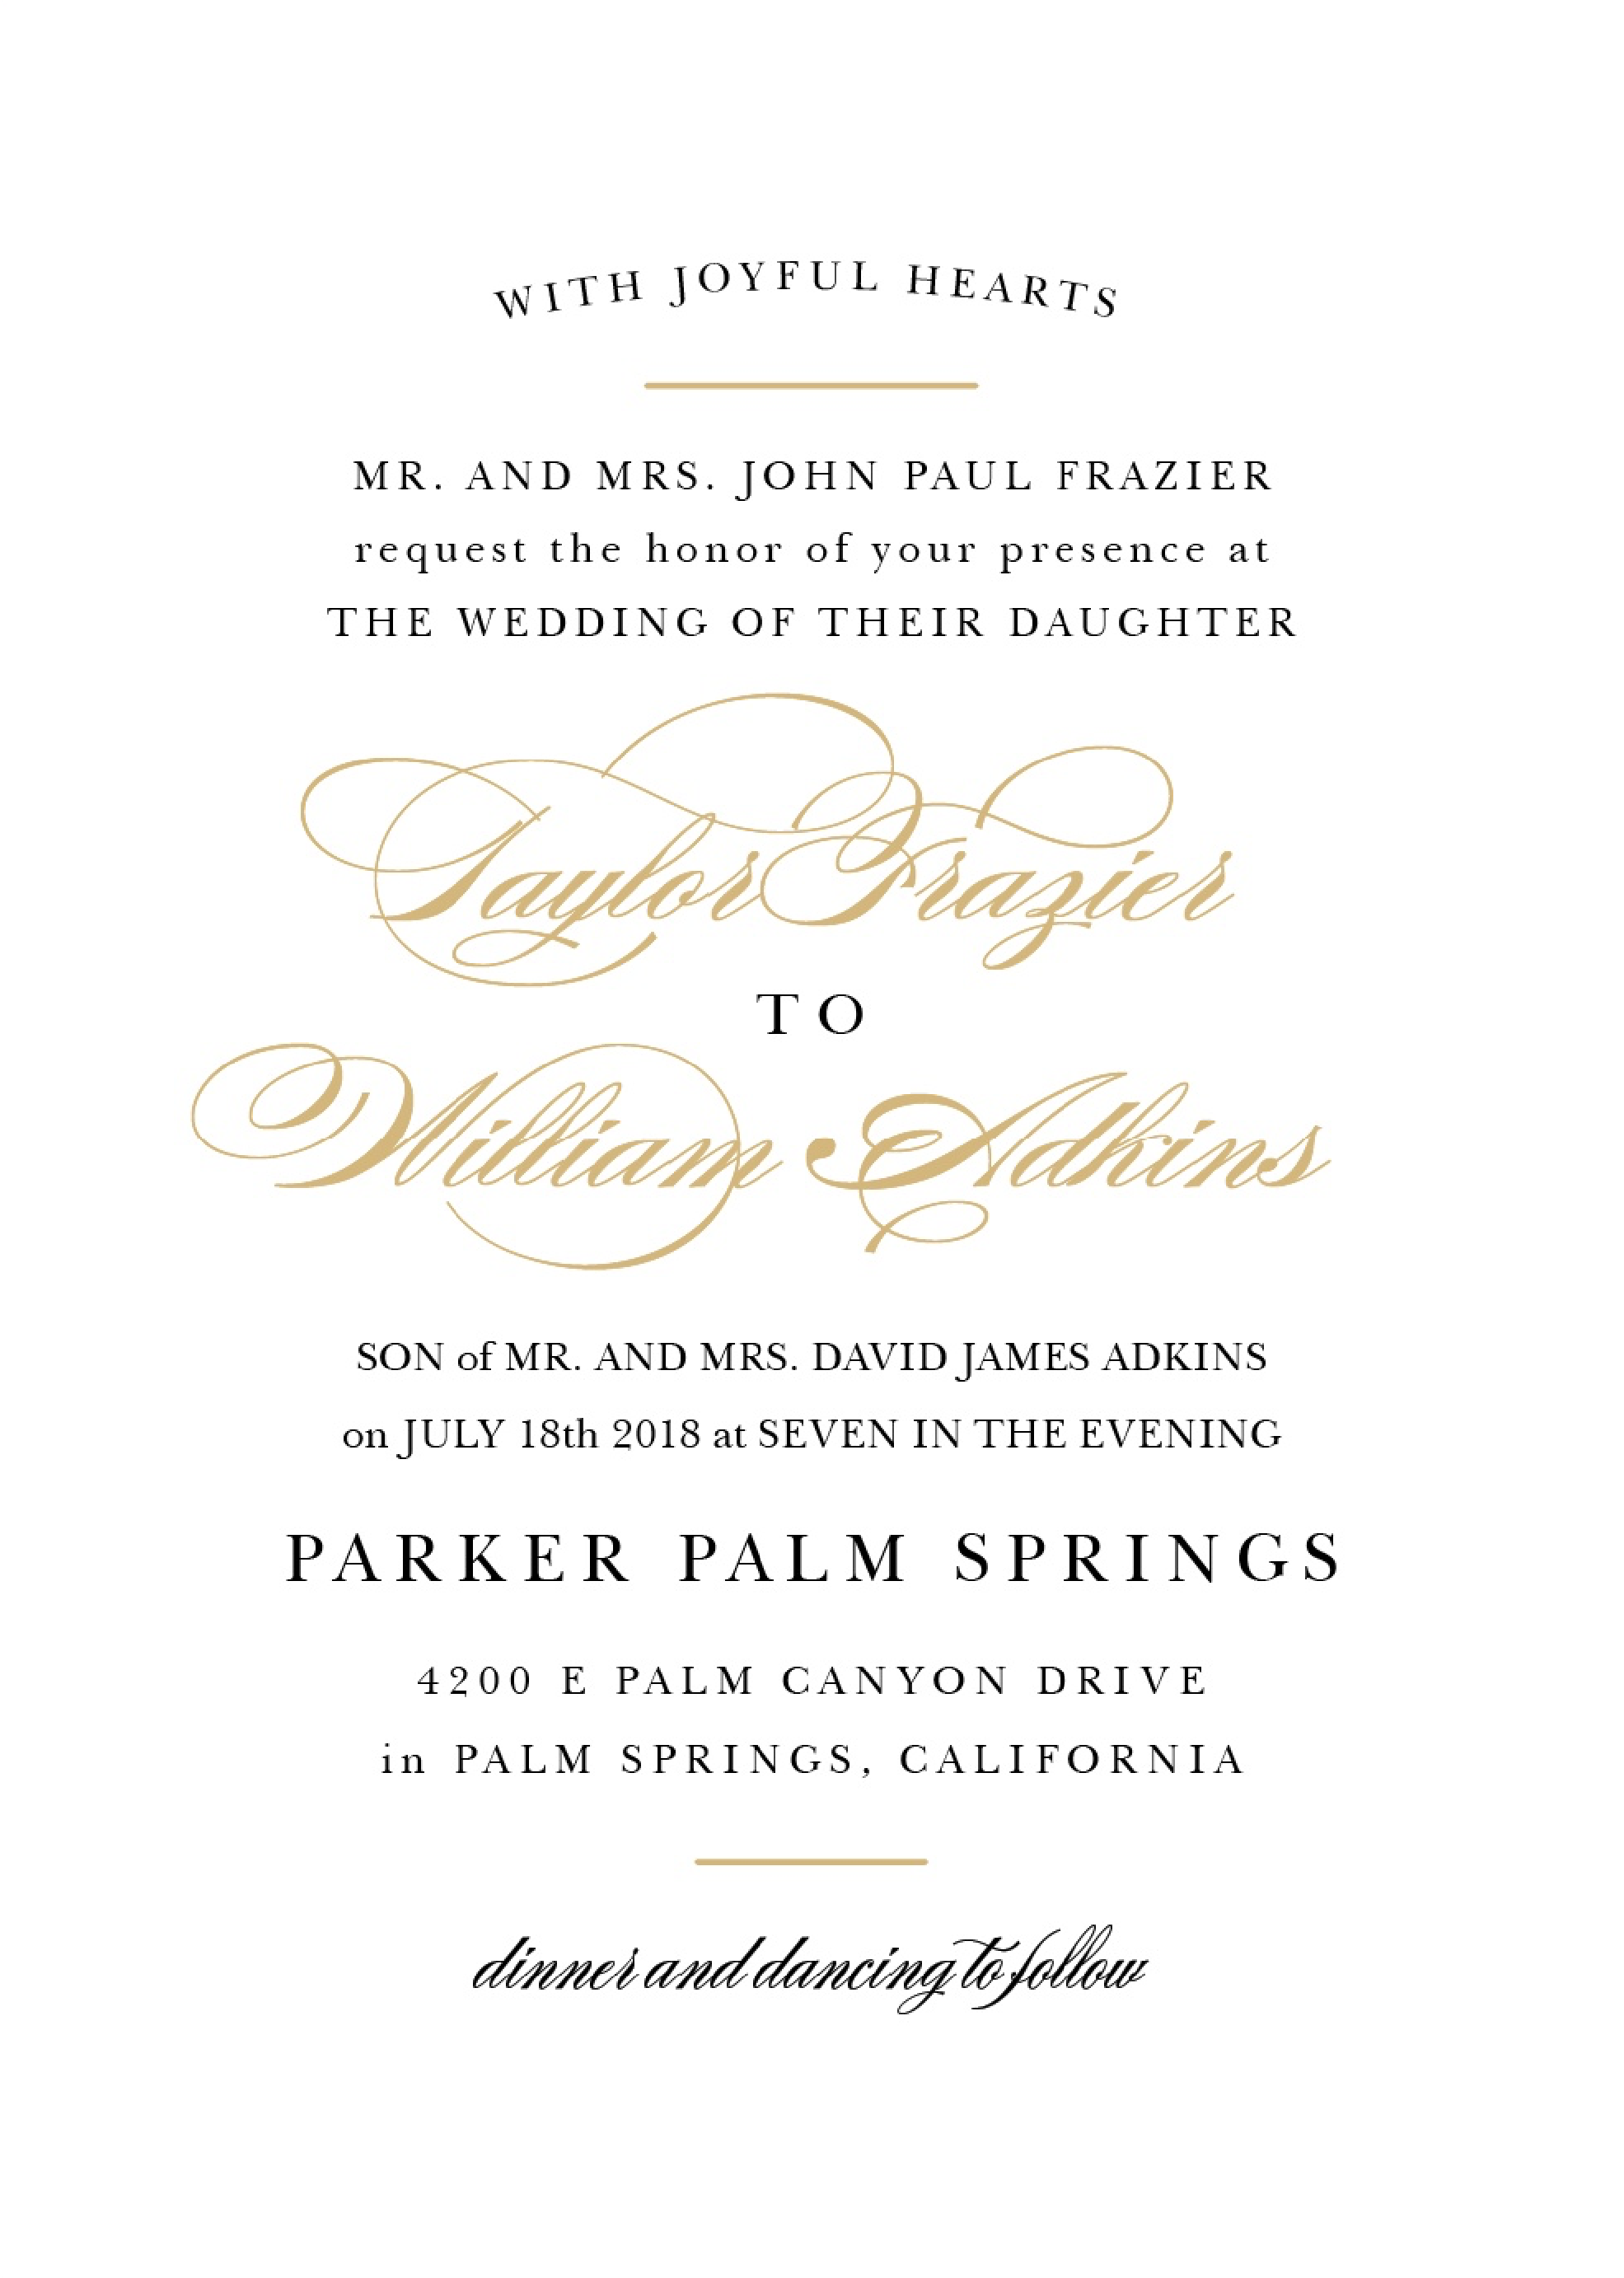 Wedding Invite Etiquette Wording: Wedding Invitation Wording Samples